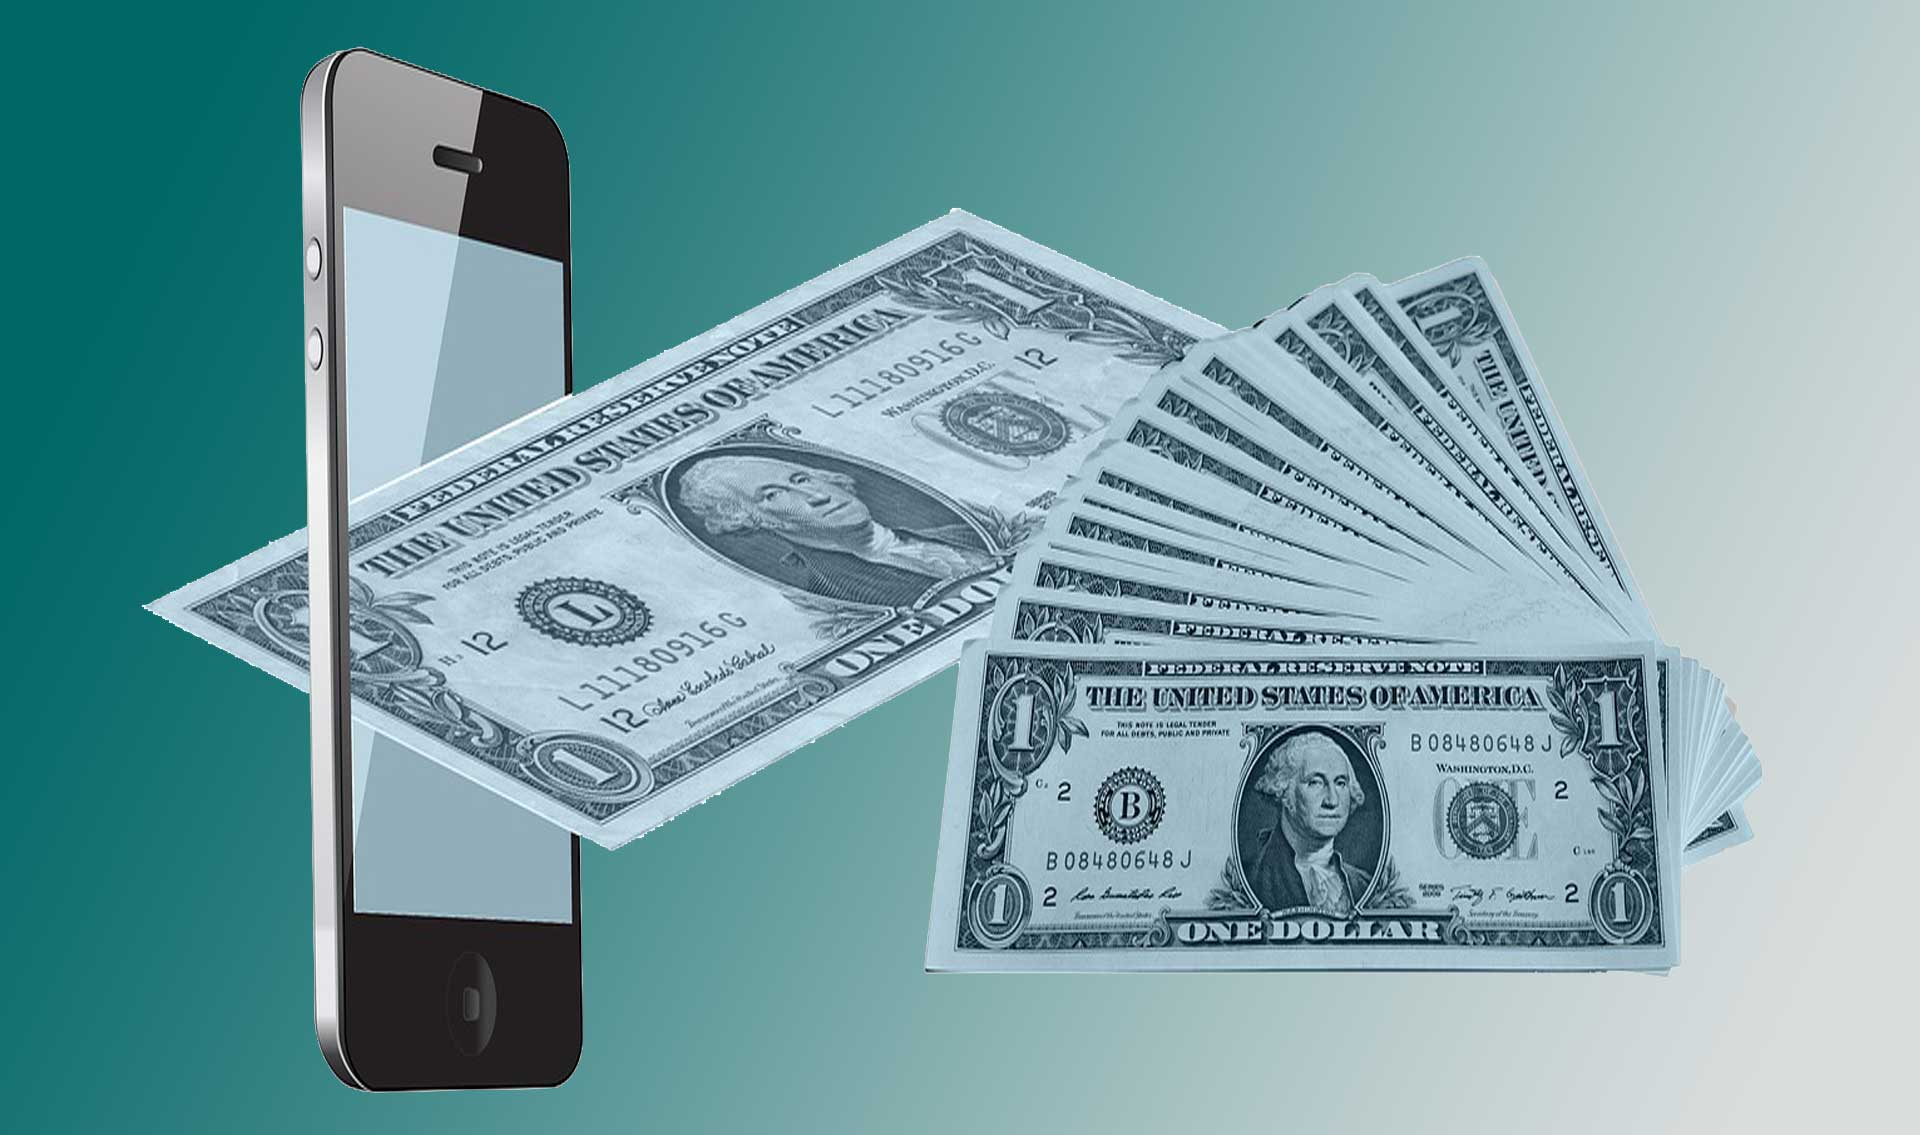 mobile banking with banking app